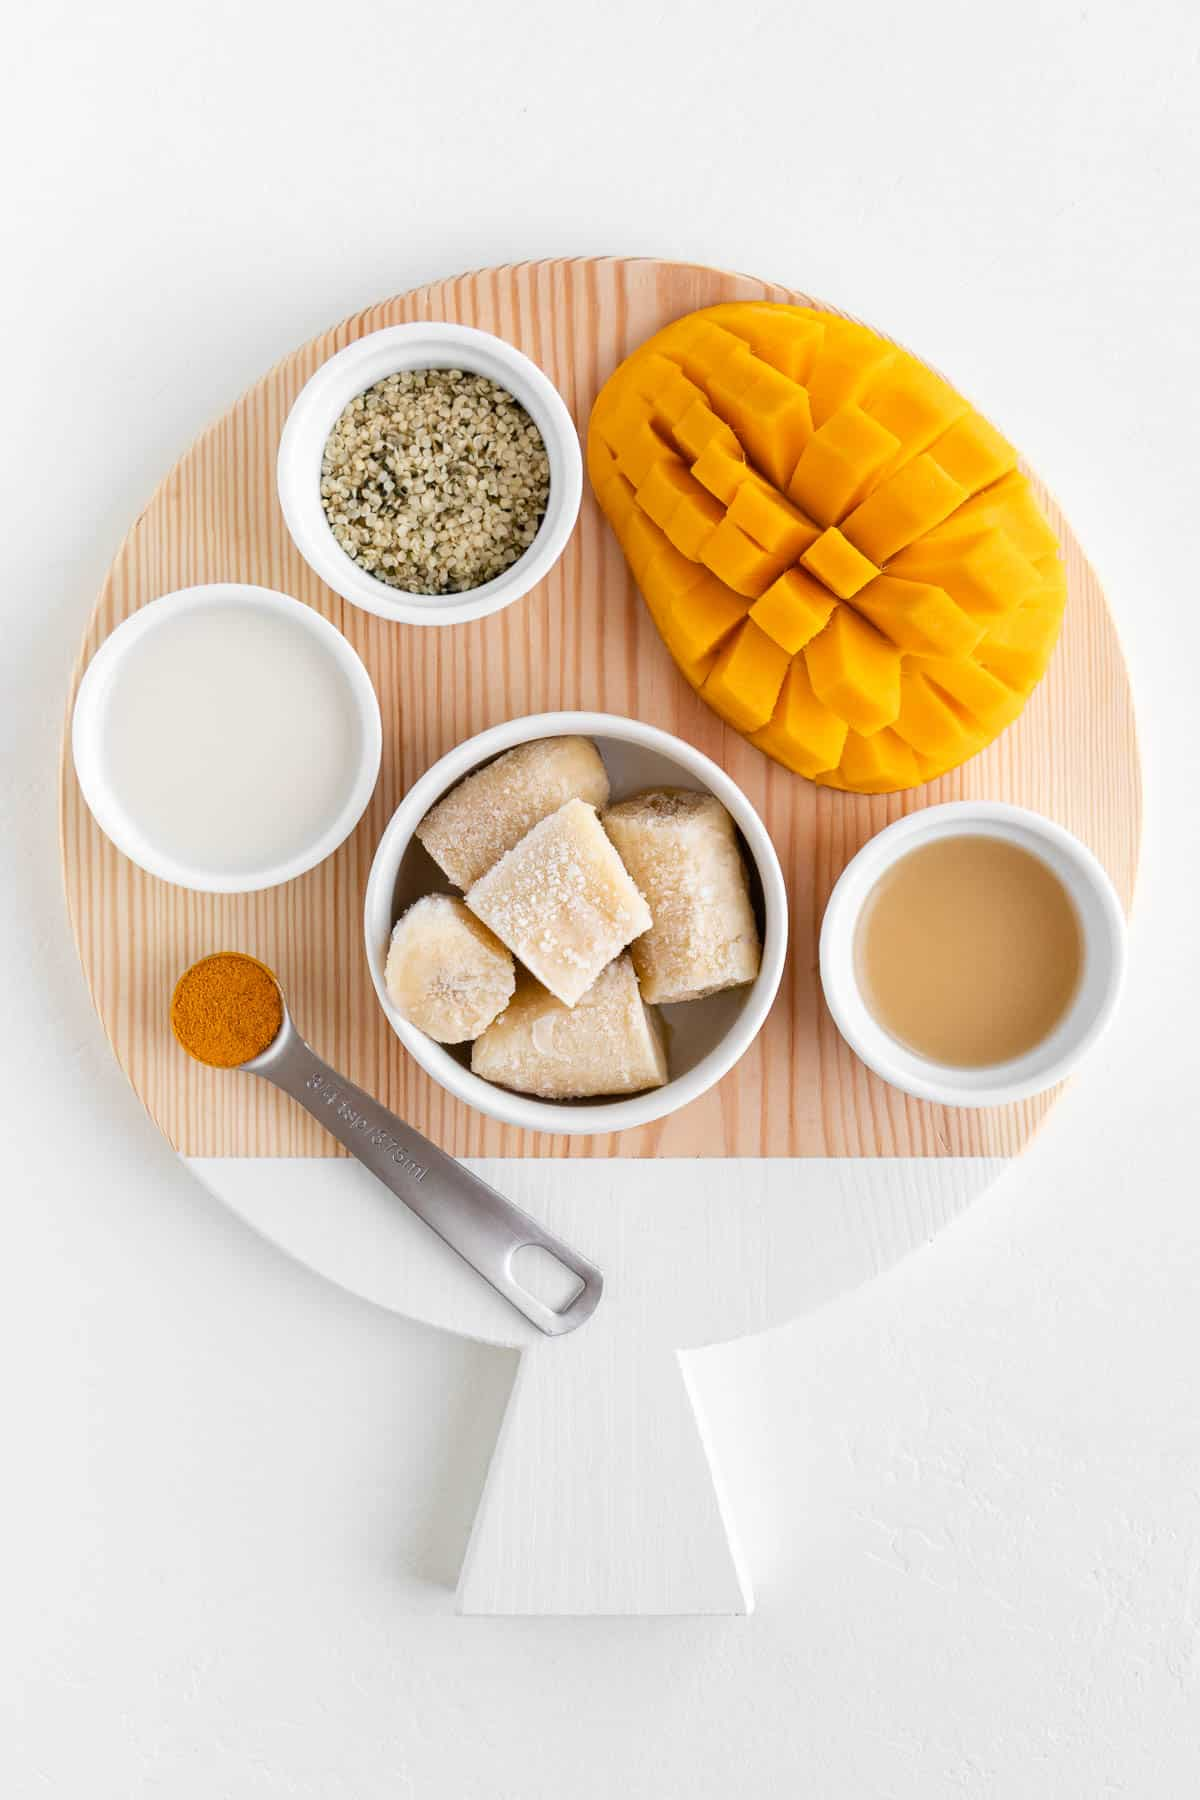 a round wooden cutting board topped with fruit, lemon juice, turmeric powder, hemp seeds, and coconut milk